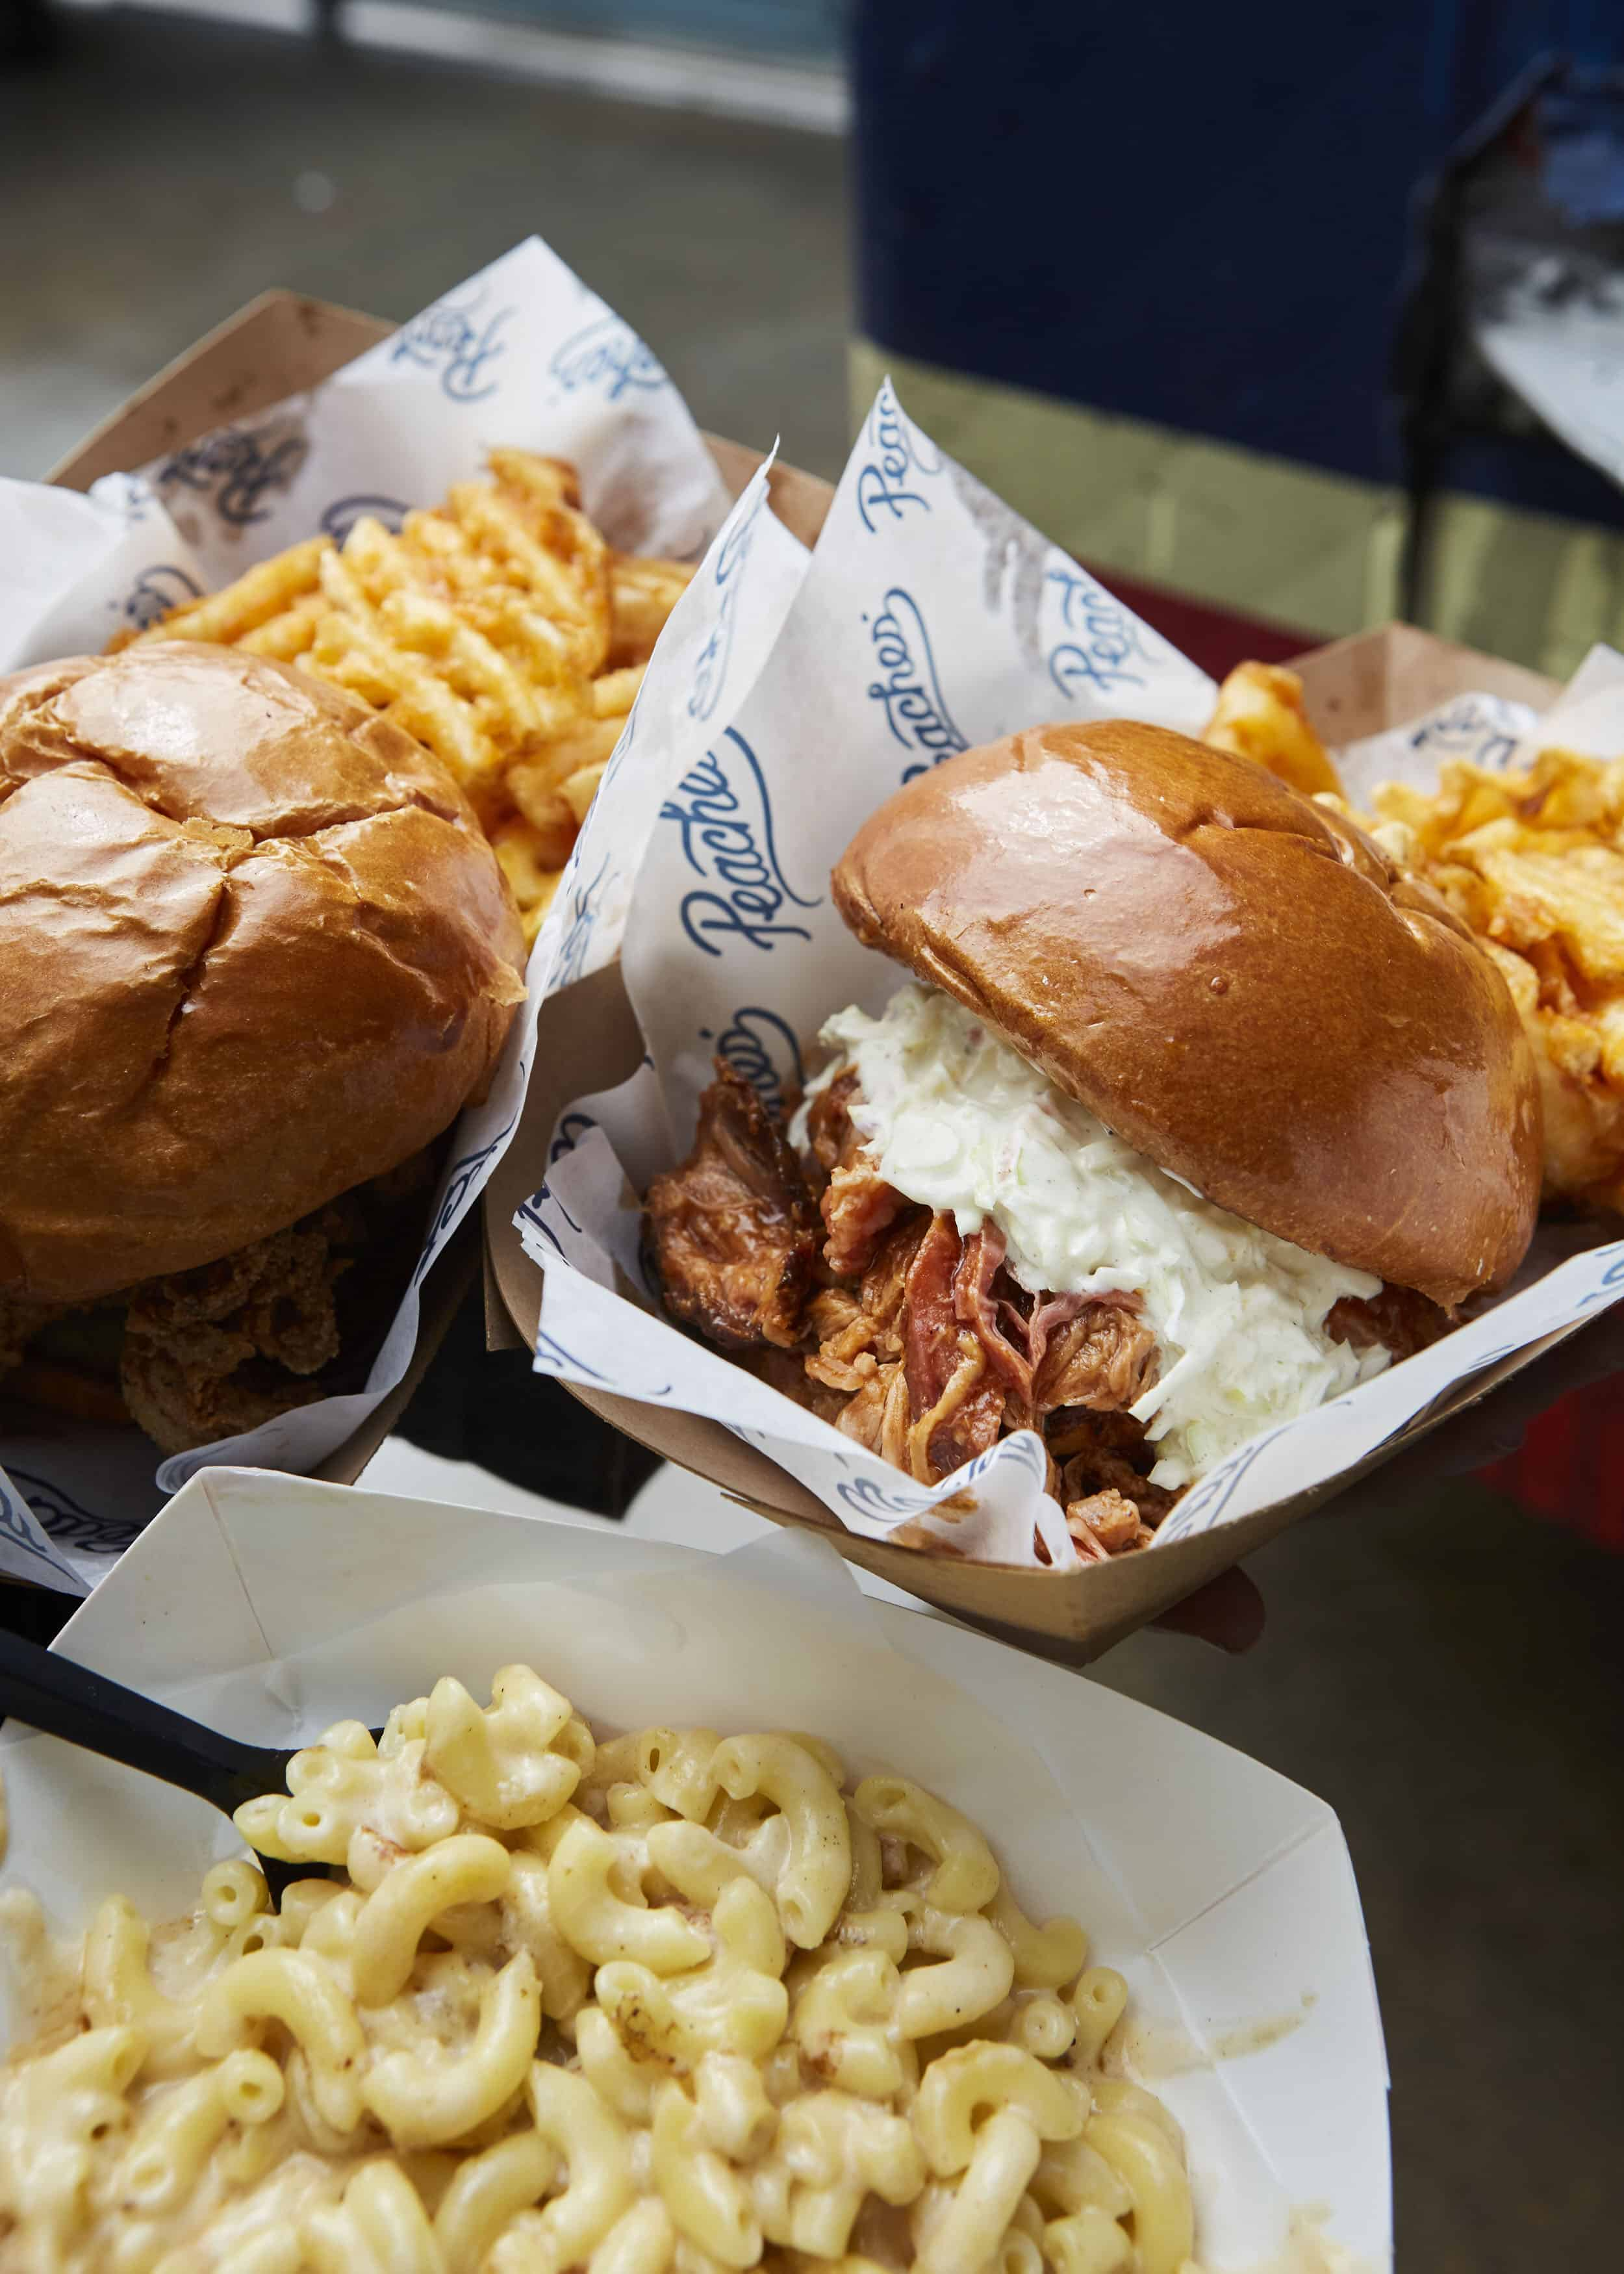 Peaches Bbq Pulled Pork Mac And Cheese Fried Chicken Sandwhich